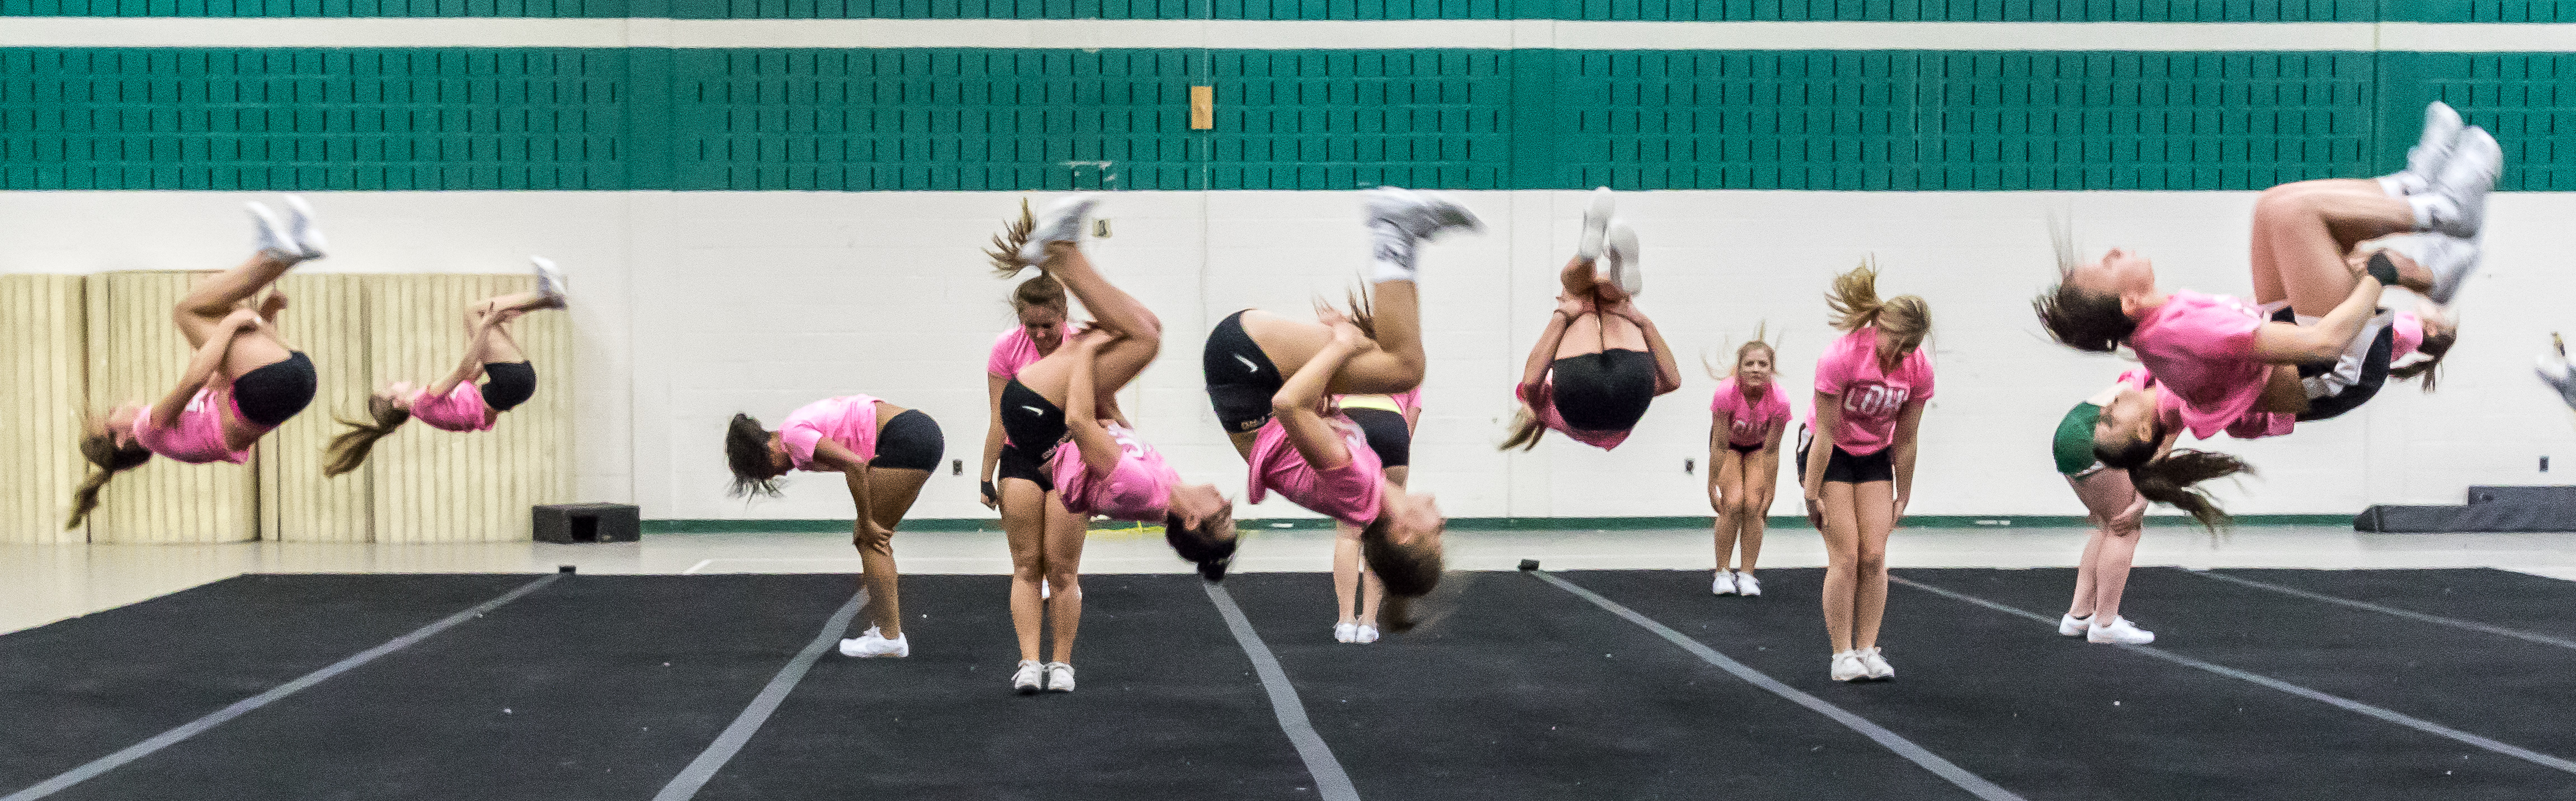 Competitive Cheer fliping